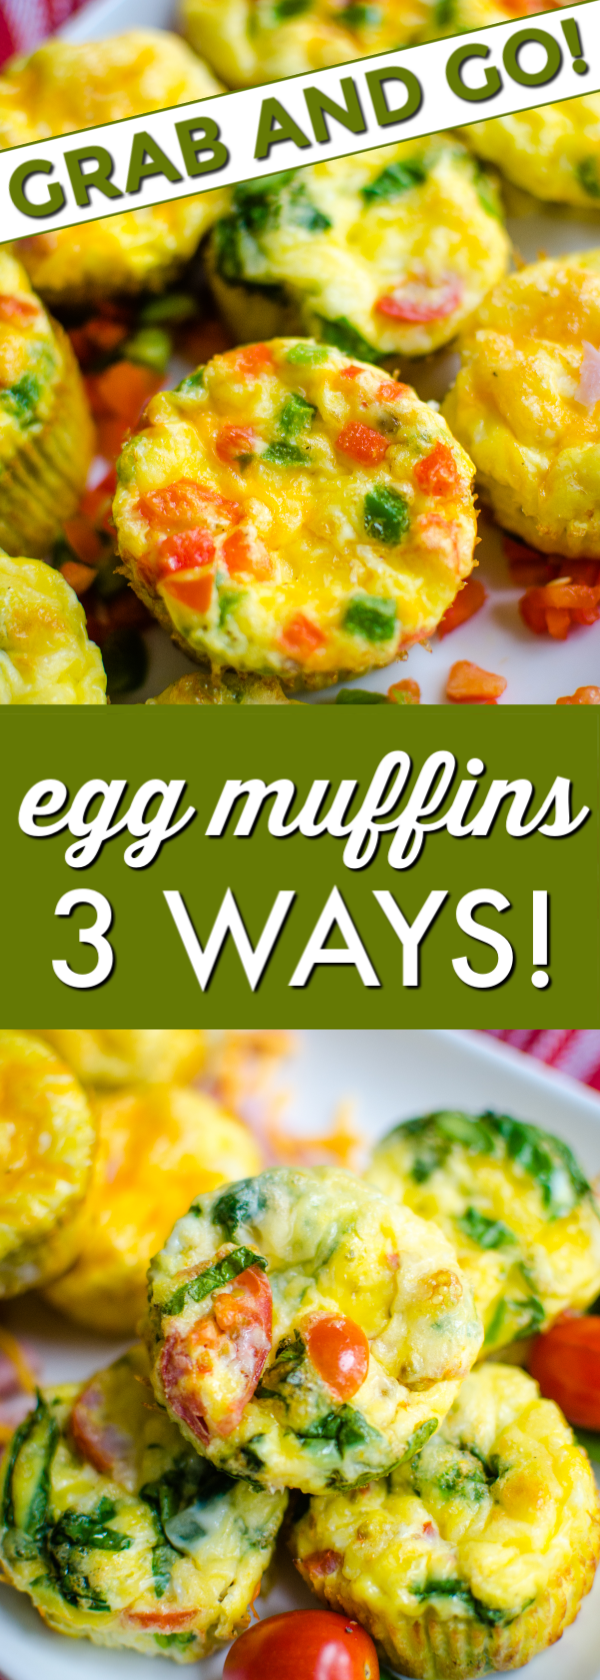 Theseegg muffinsare perfect for a grab-and-go breakfast!Egg Muffinsare a delicious and tasty breakfast, naturally low carb and easy to make ahead of time. #eggmuffins